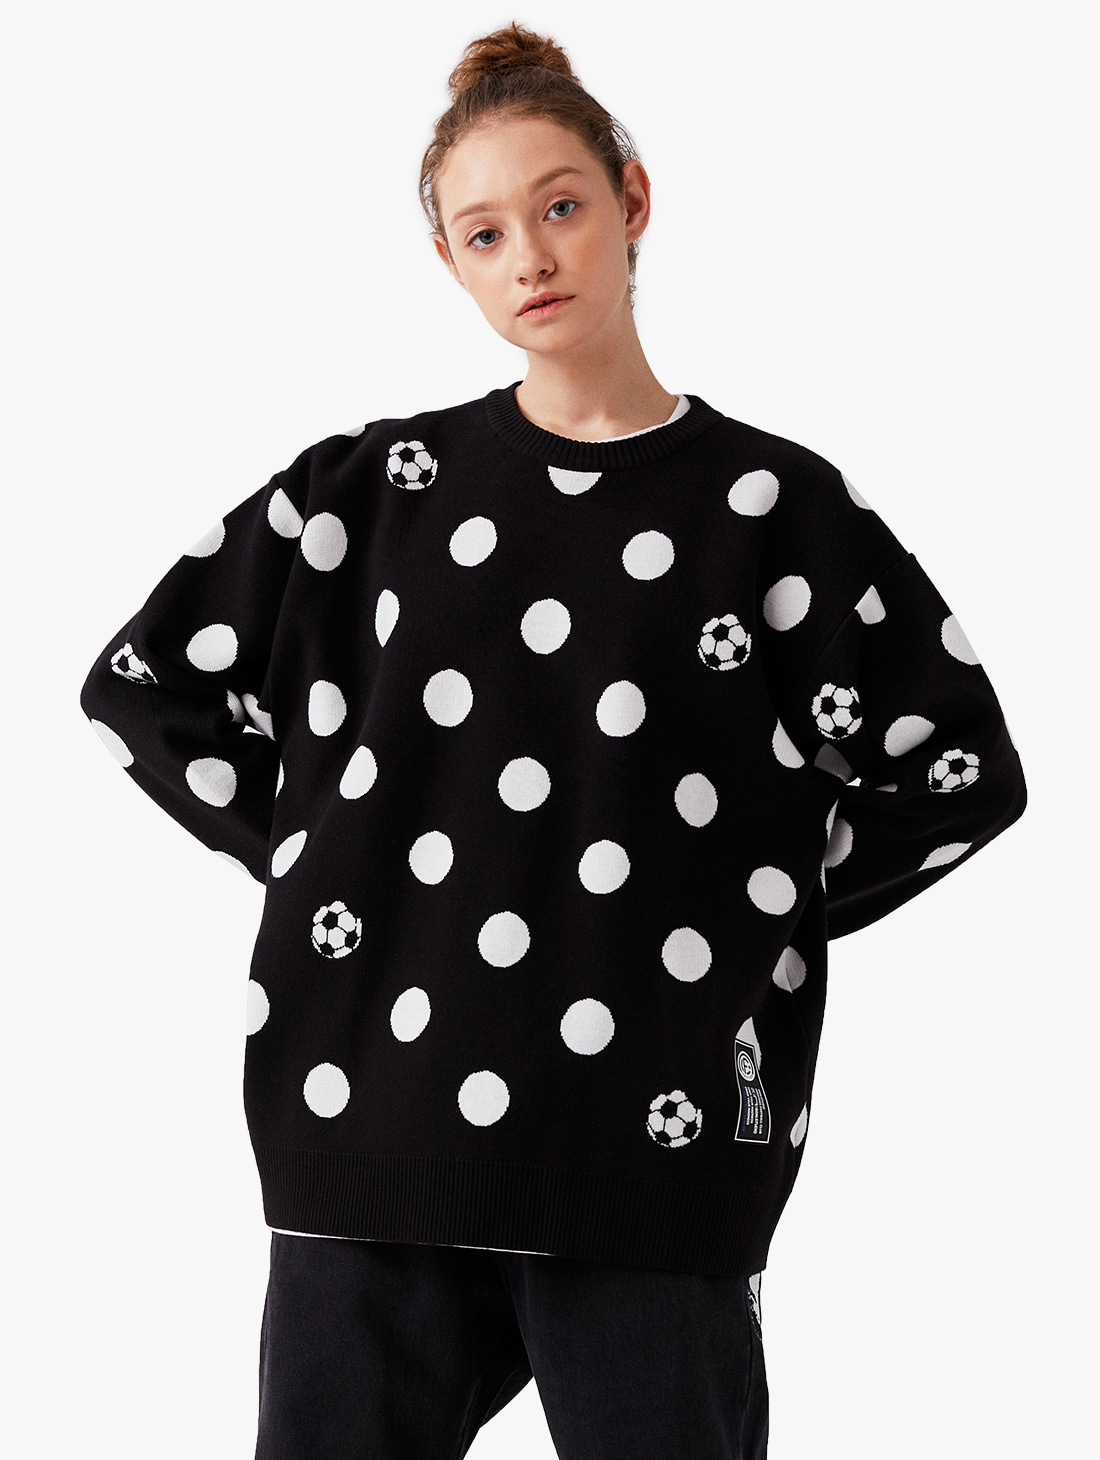 GOALSTUDIO CFC DOT PIXEL KNIT SWEATER